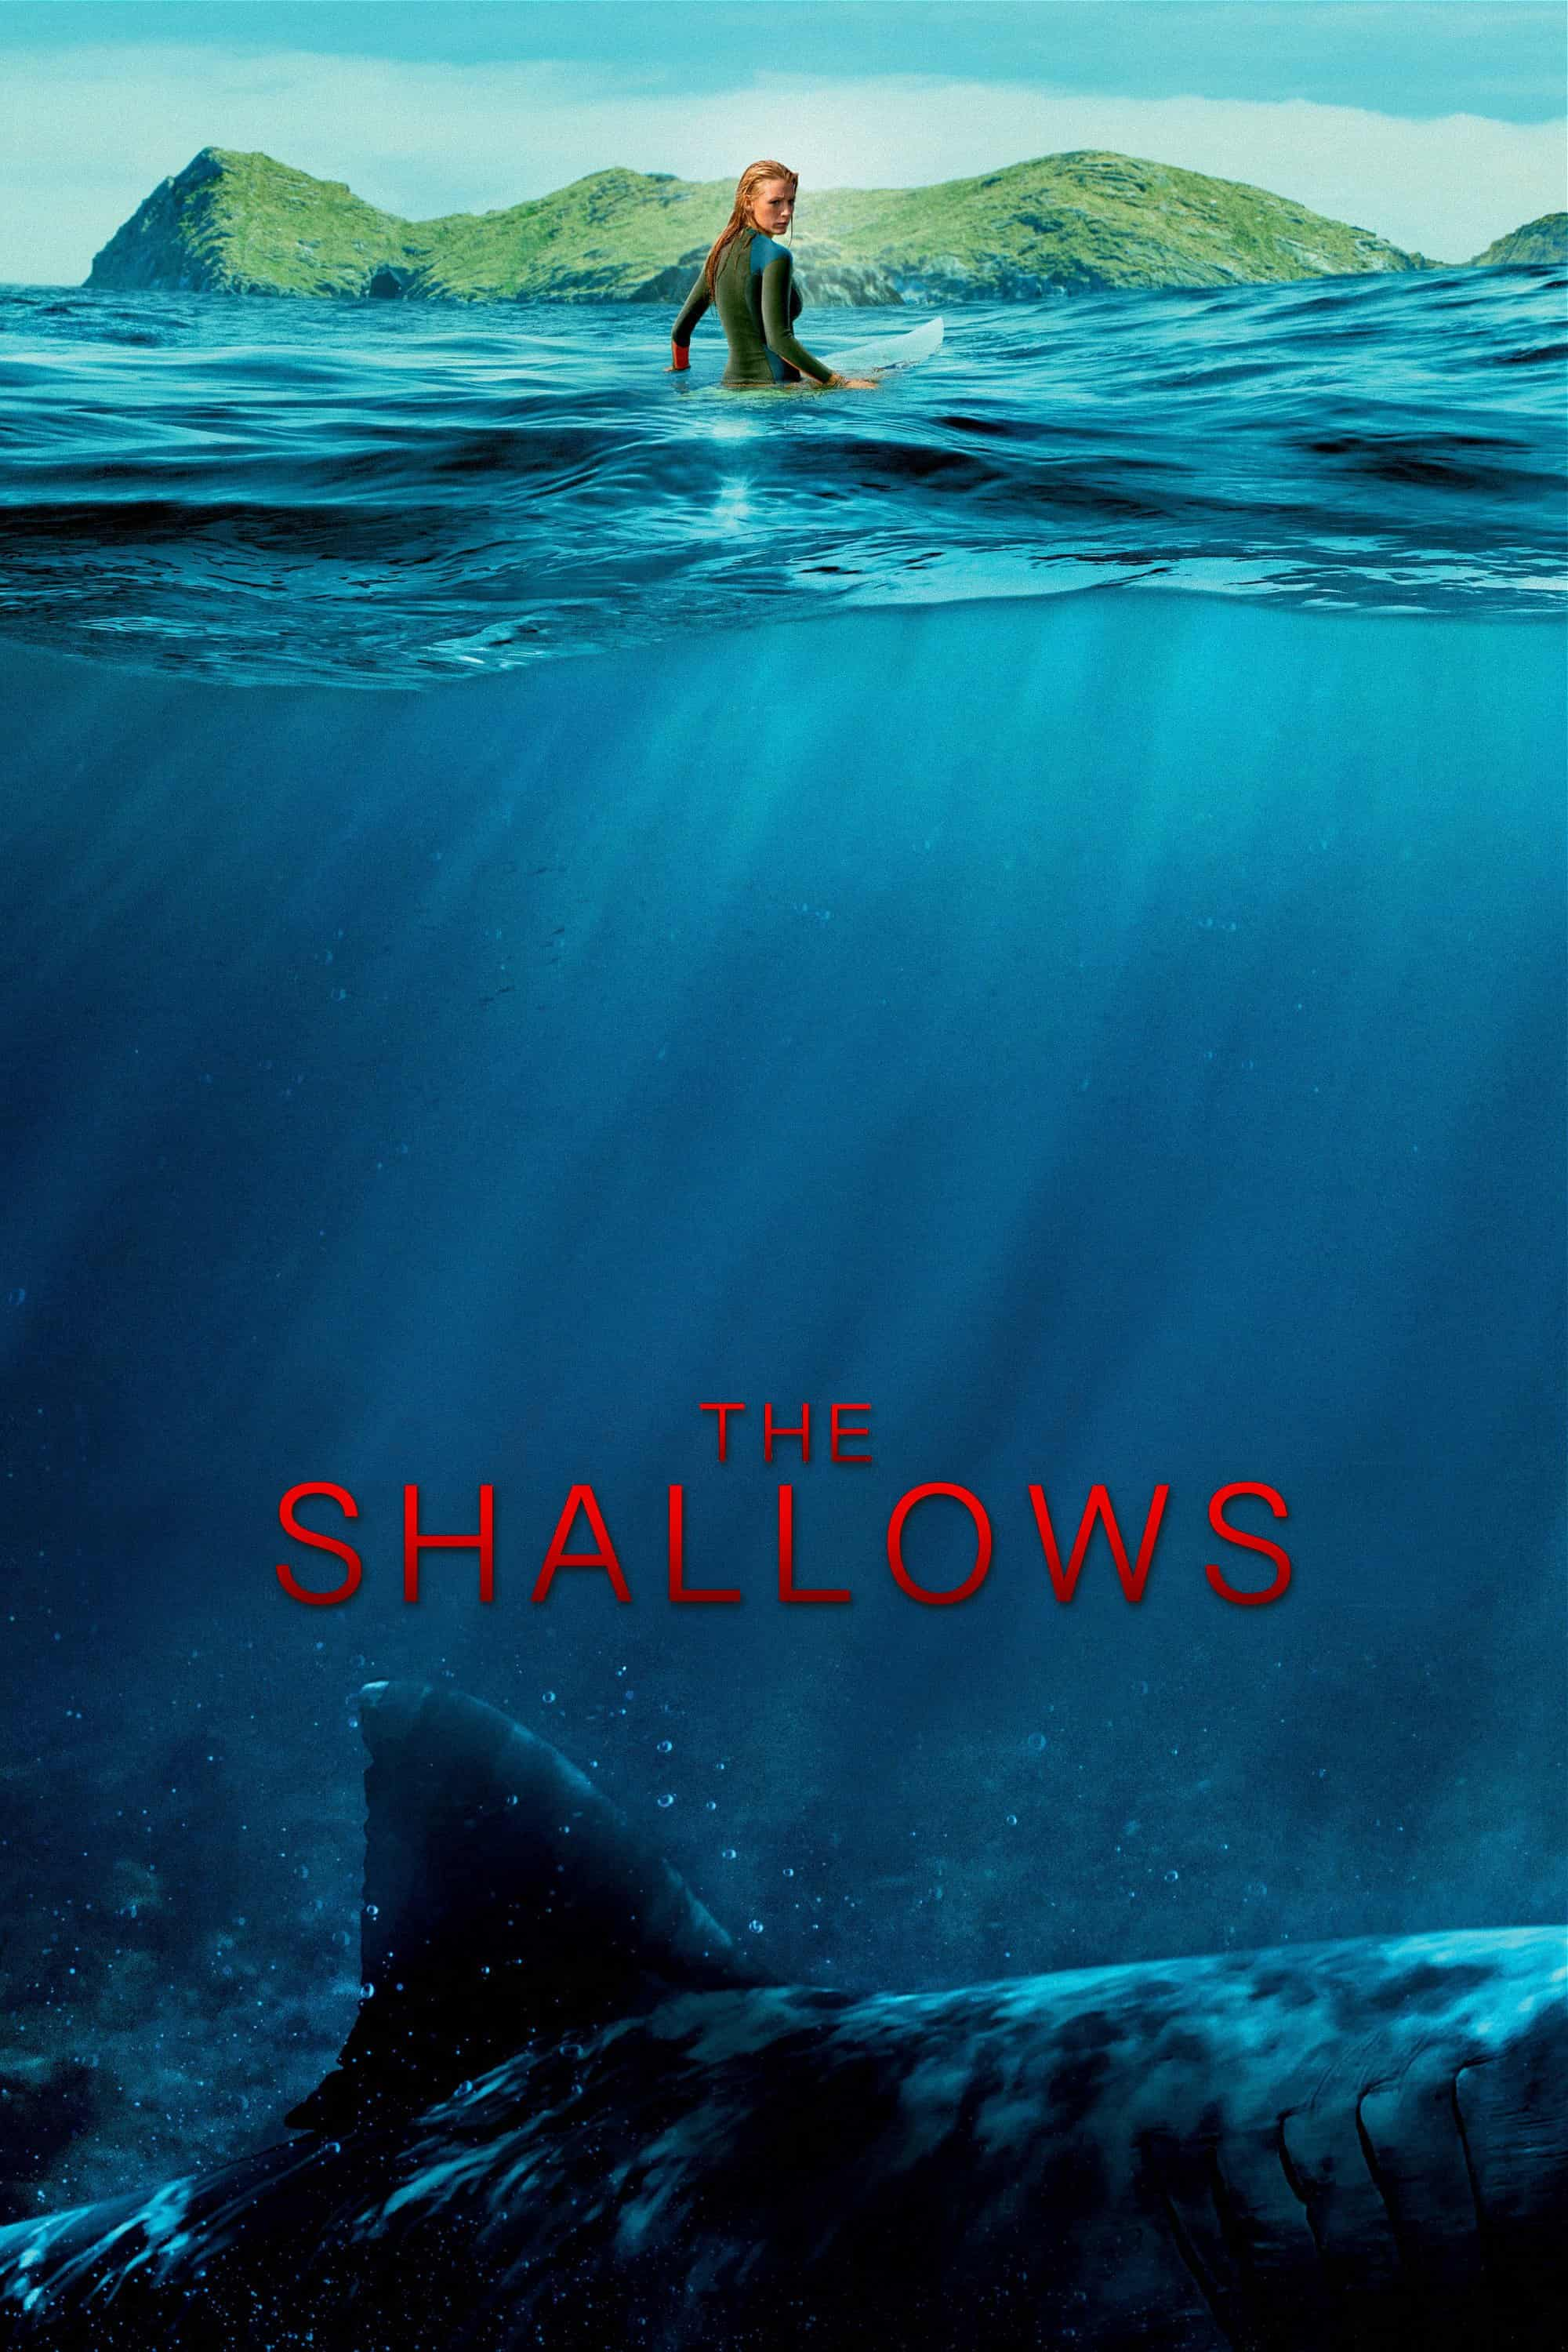 The Shallows, 2016